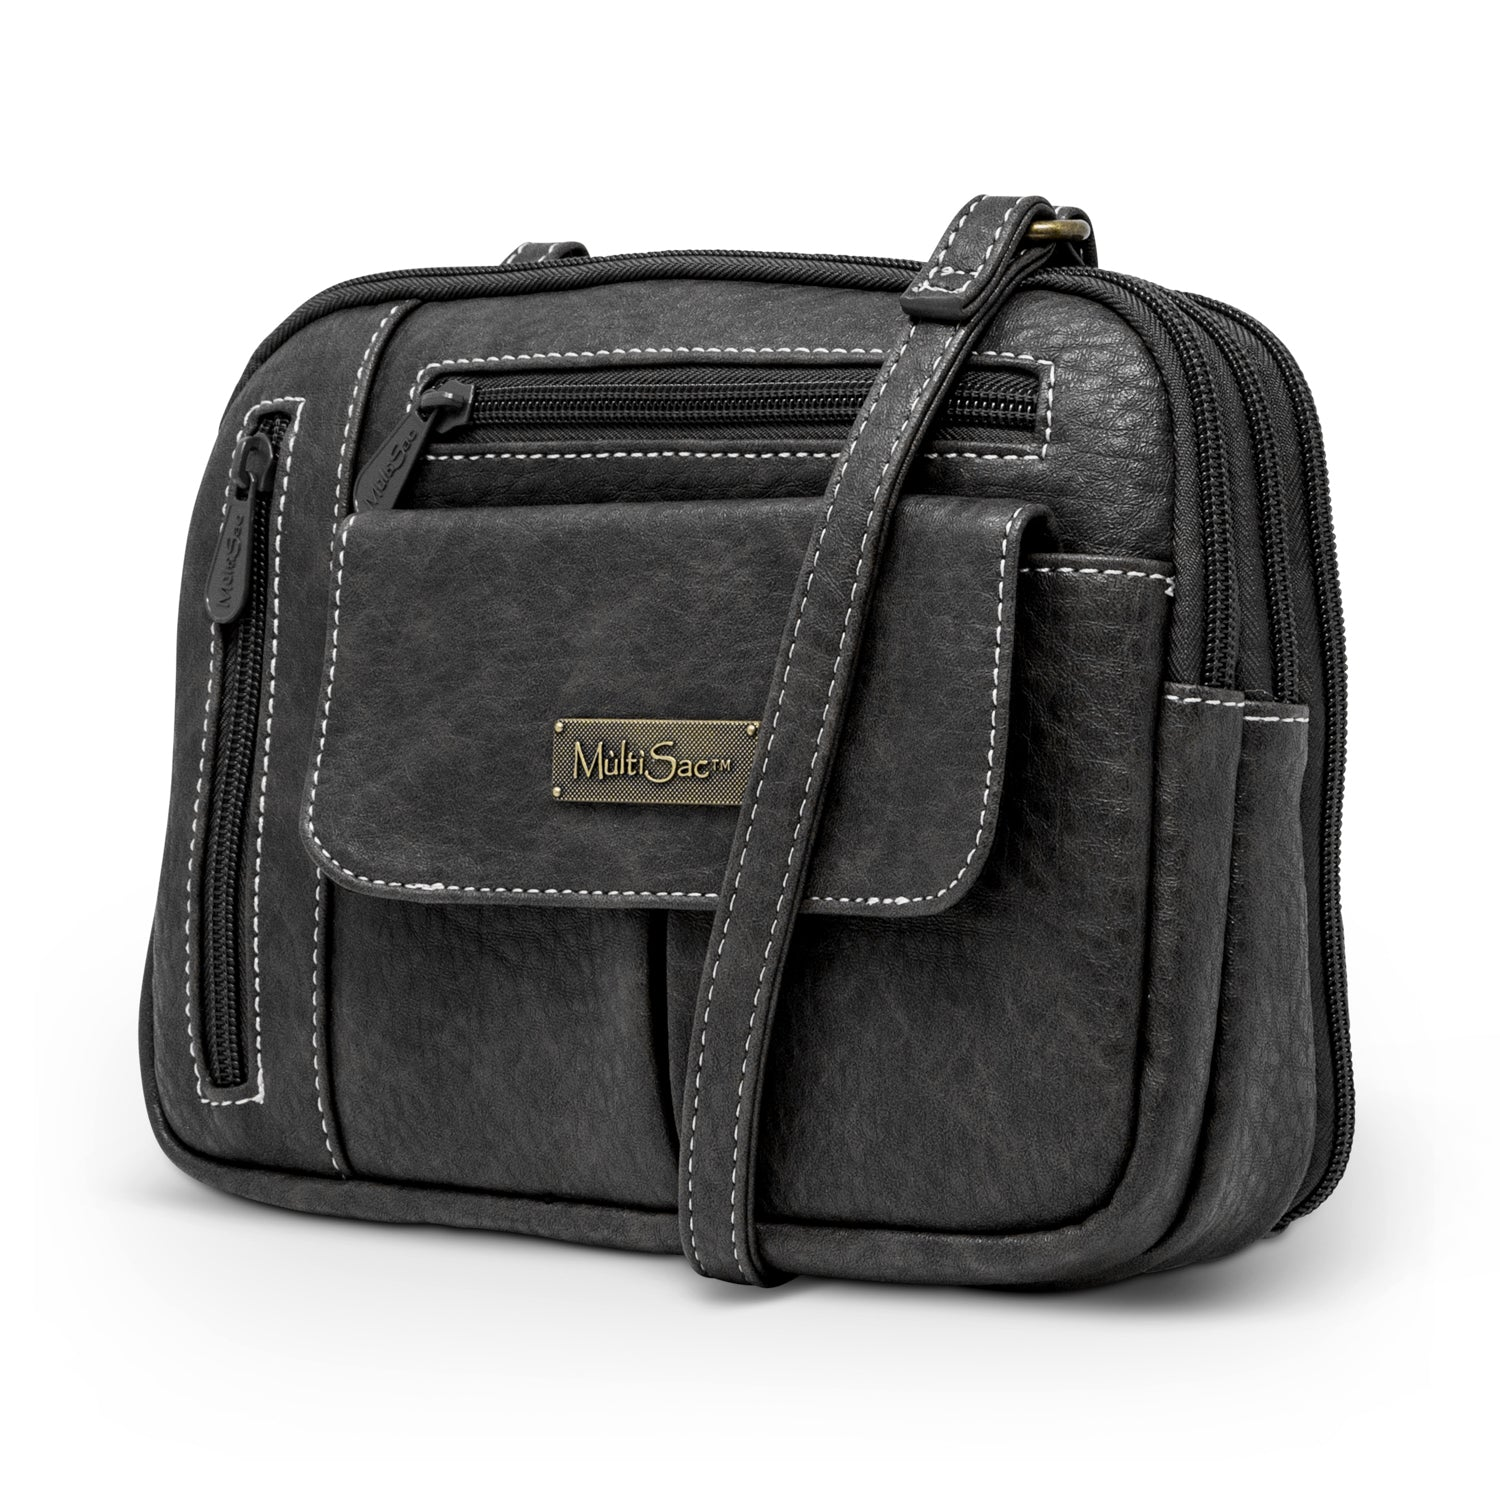 Zippy Triple Compartment Crossbody Bag (Black Austin)